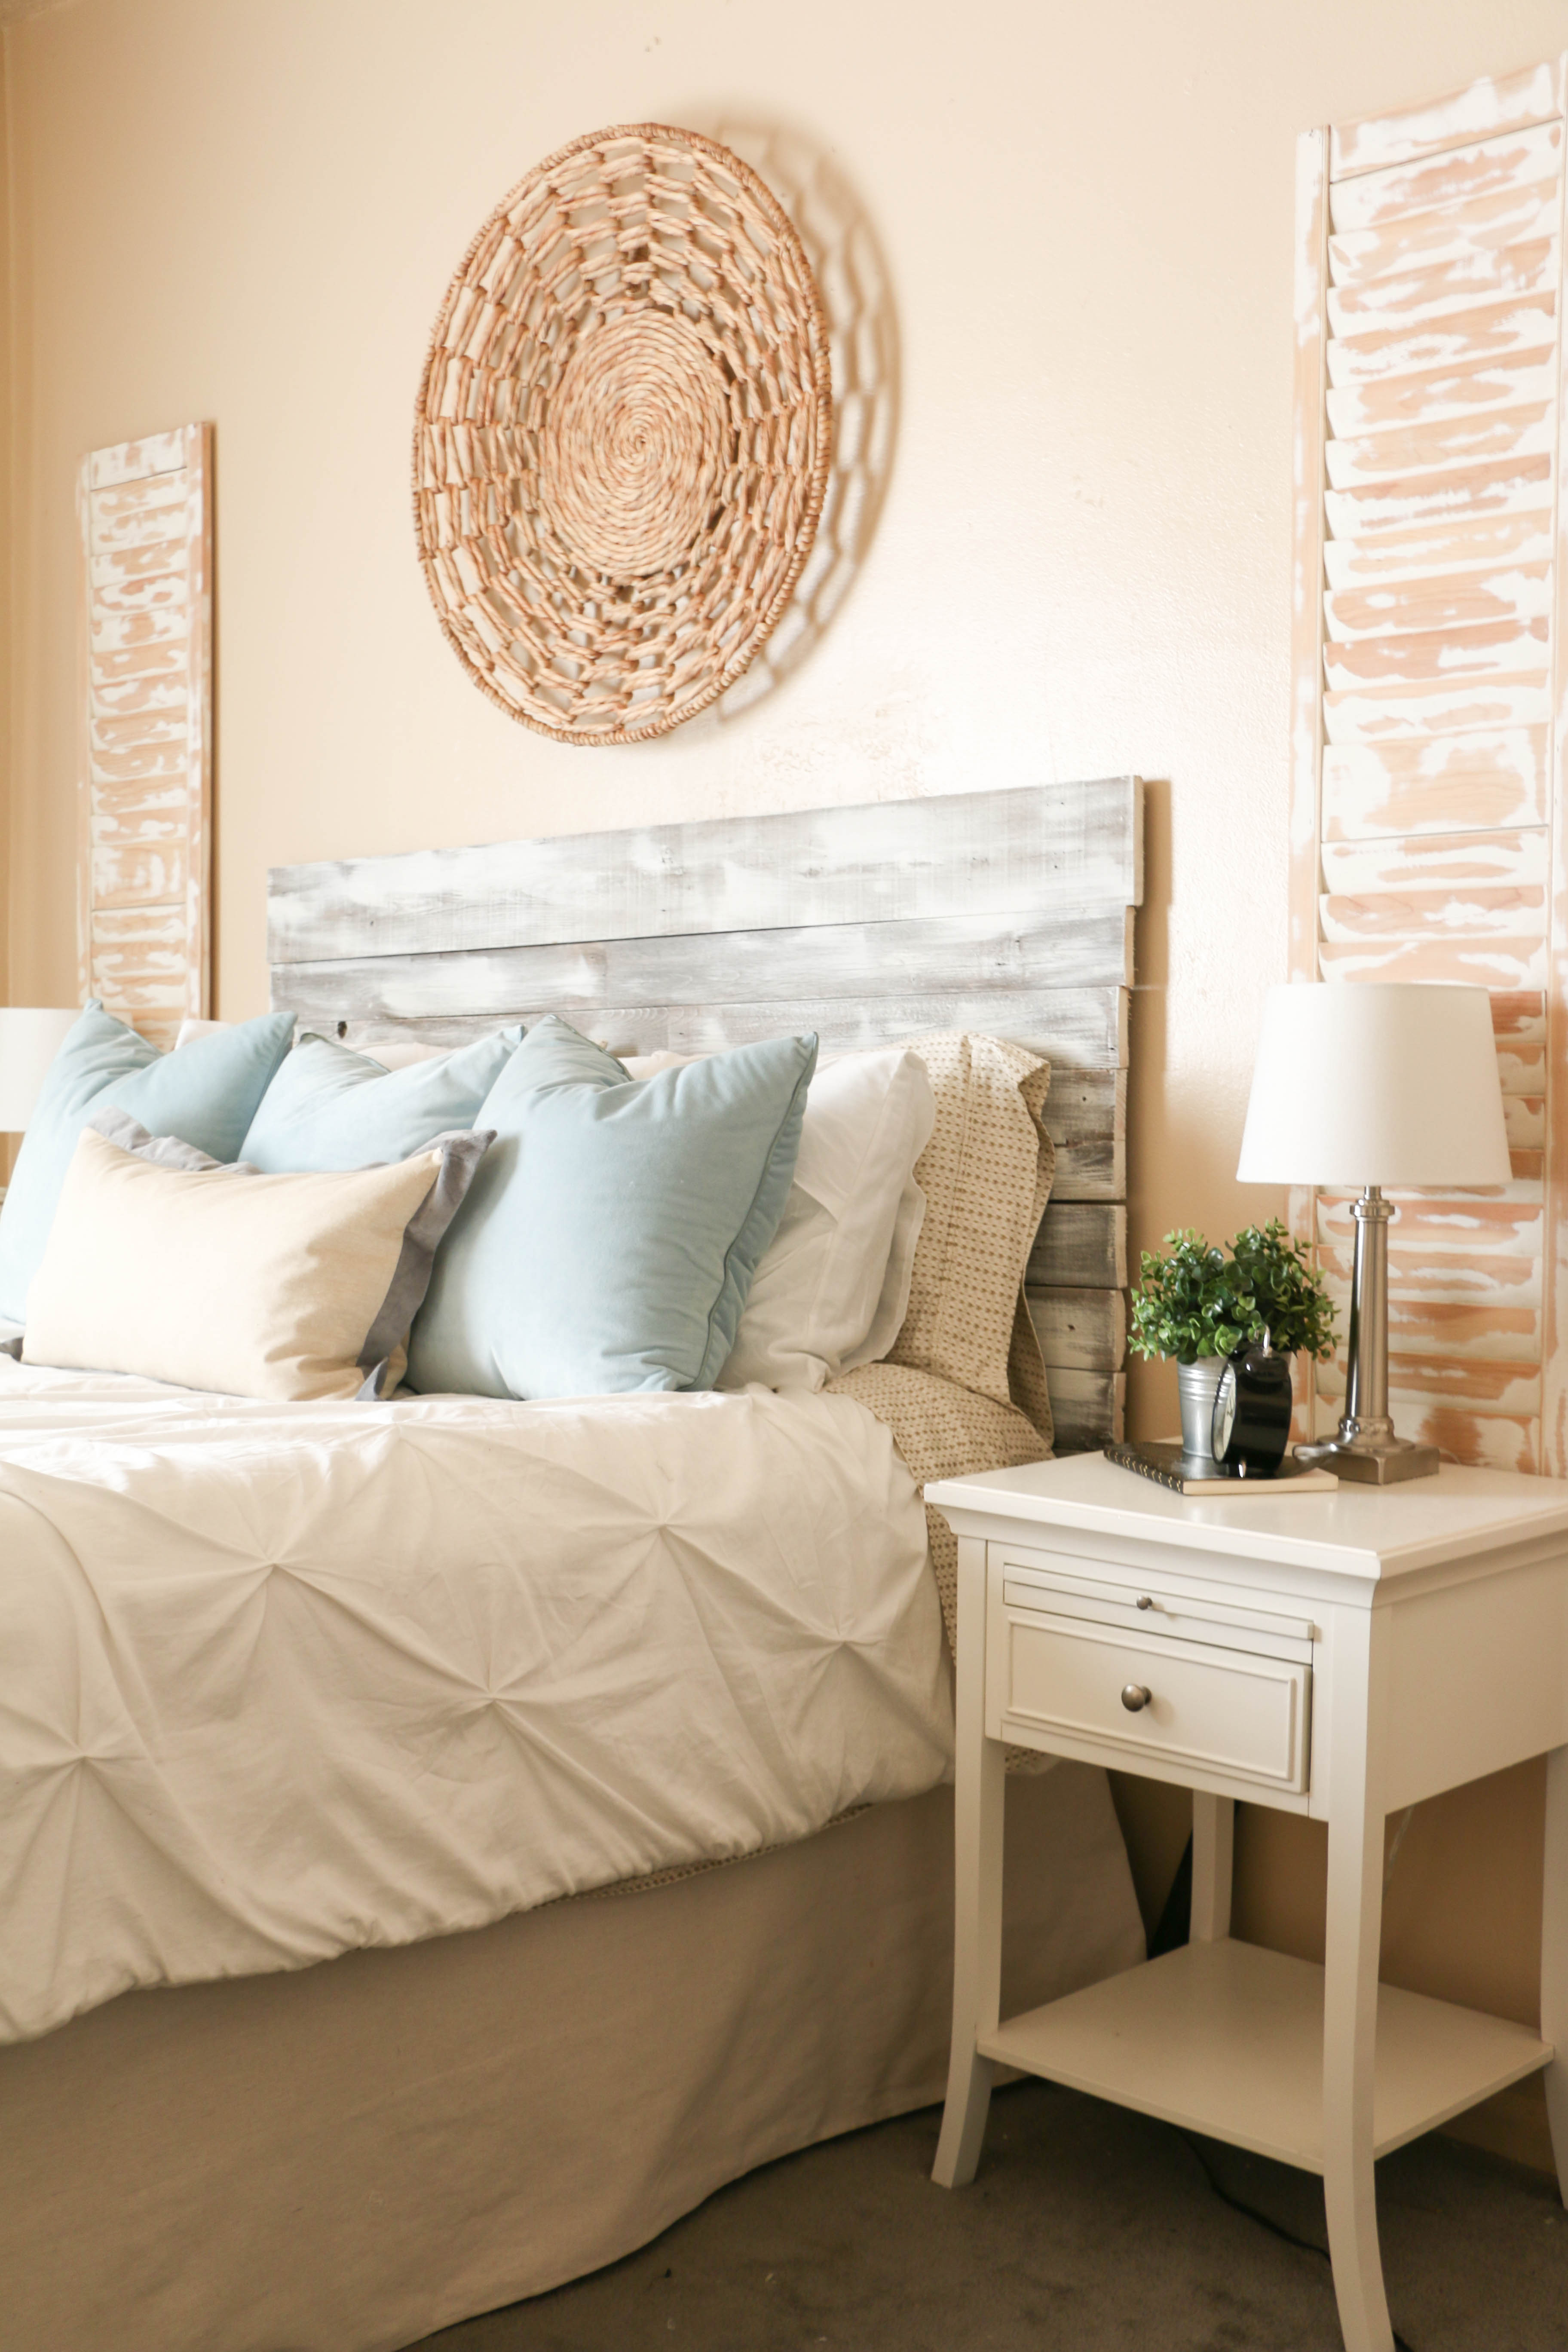 the modern team extra our antique roundup texas shopping henderson vintage long ehd round market event top flea rustic blog space lumbar pillows emily farmhouse bedroom roundtop pillow